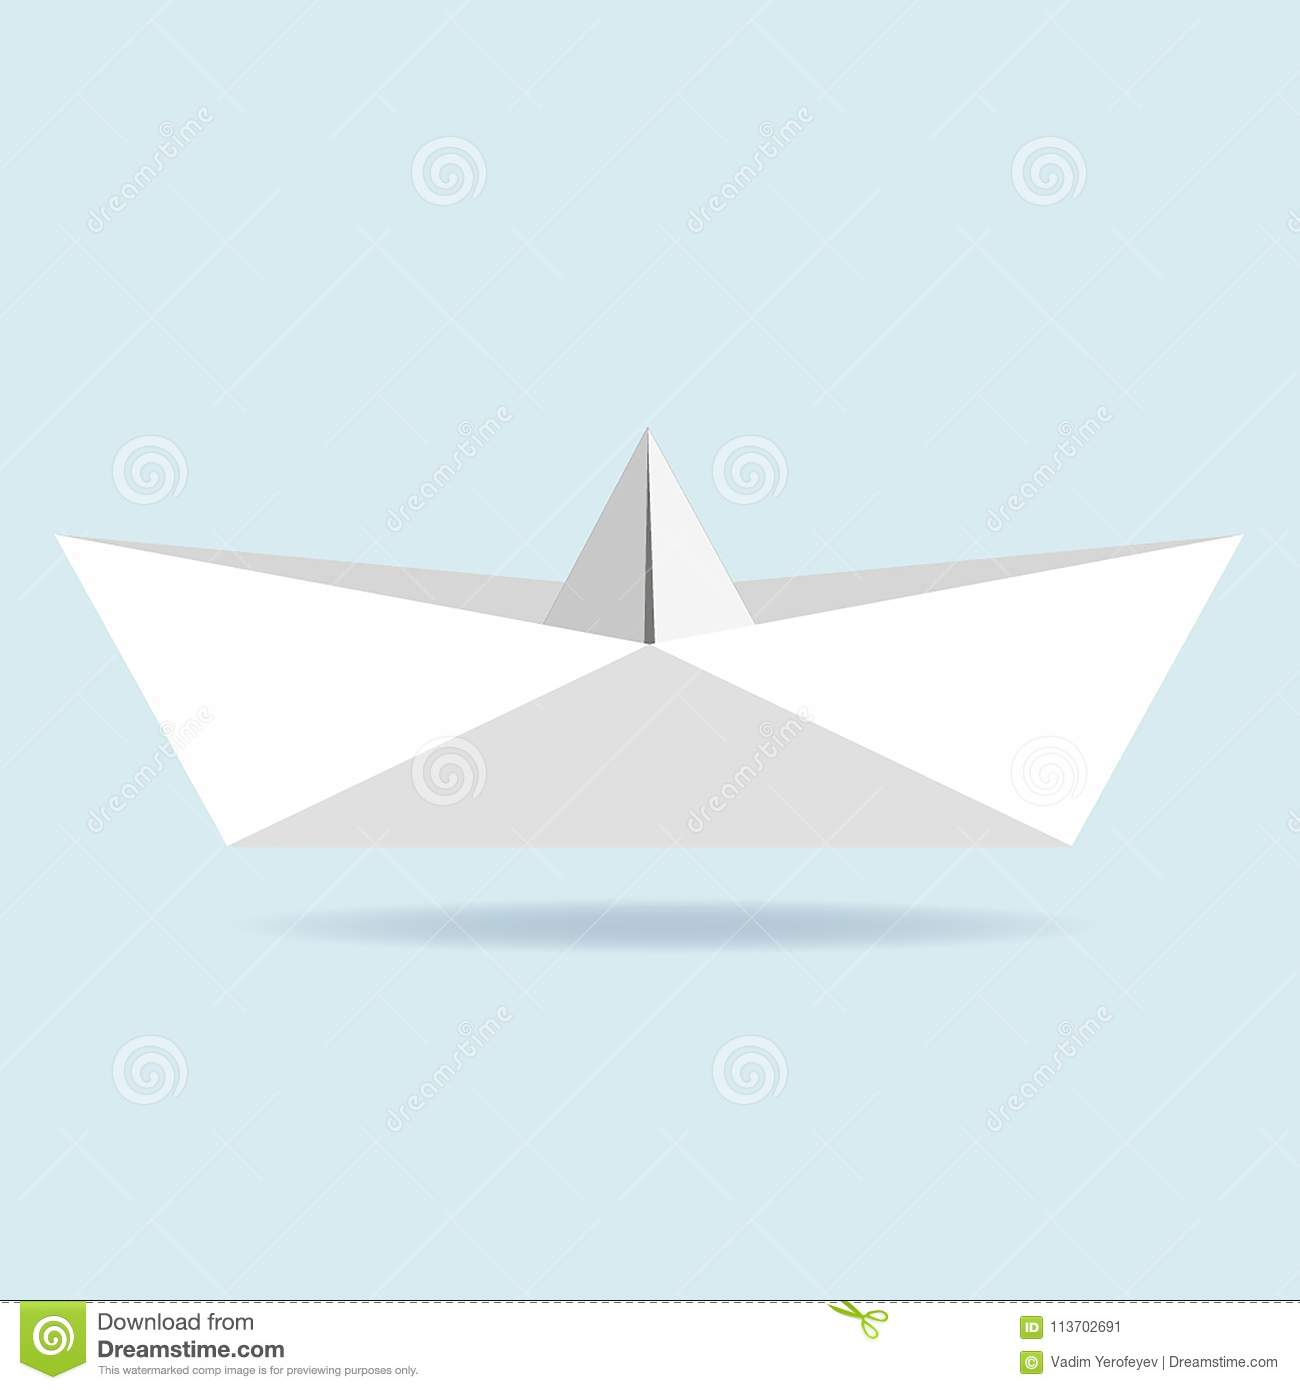 Origami Paper Boat Vector Stock Vector Illustration Of Isolated